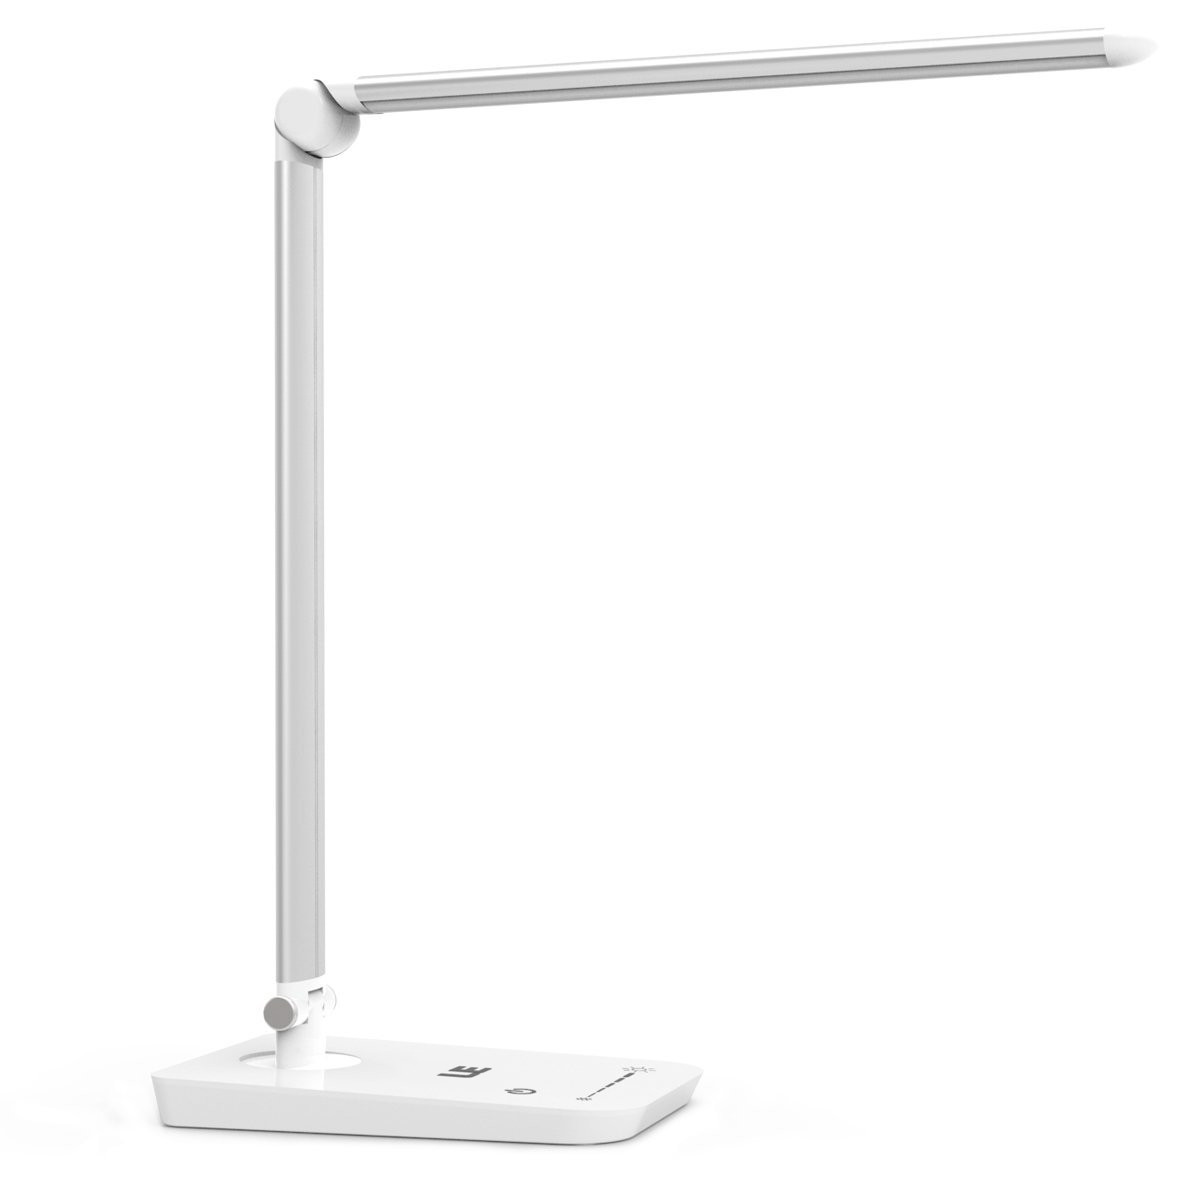 Best ideas about Led Desk Lamp . Save or Pin LE 8W Dimmable Touch Sensitive Desk Lamp 7 Level Now.